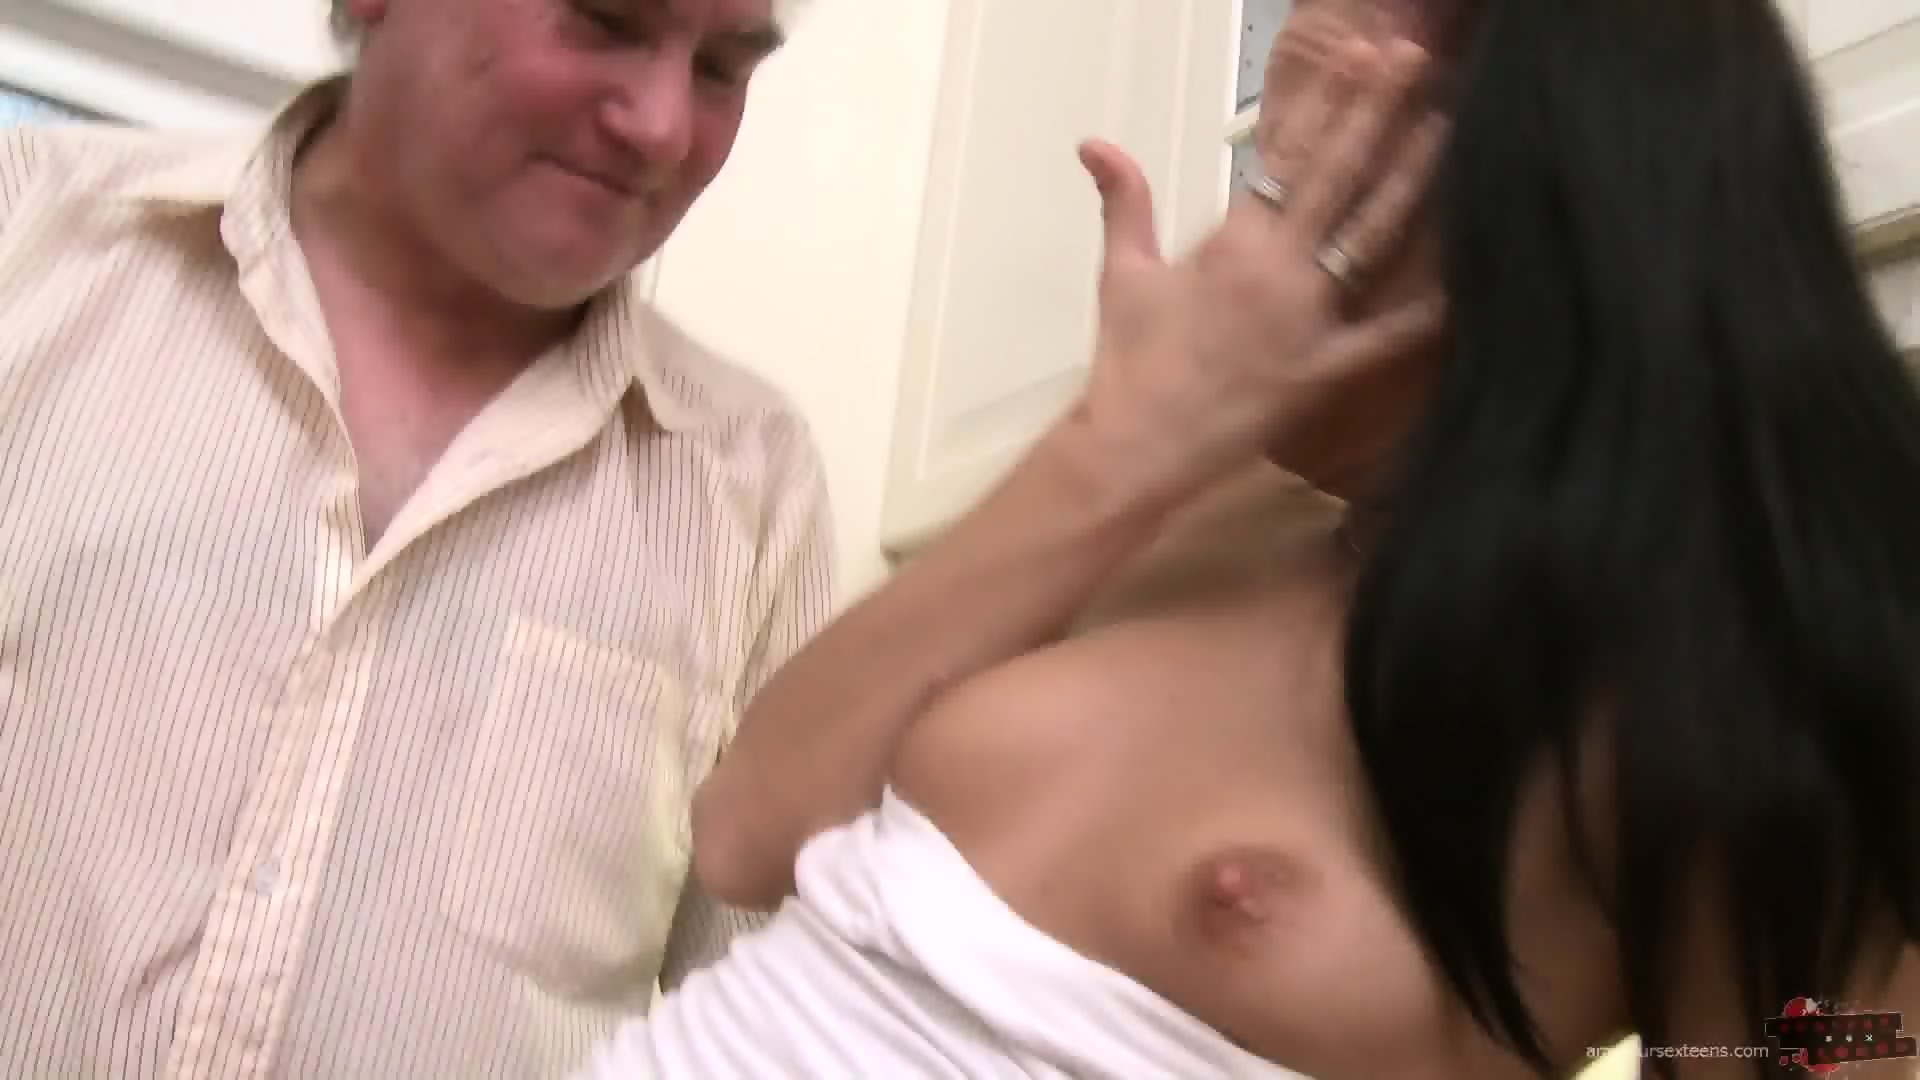 naked girls next door geting fucked